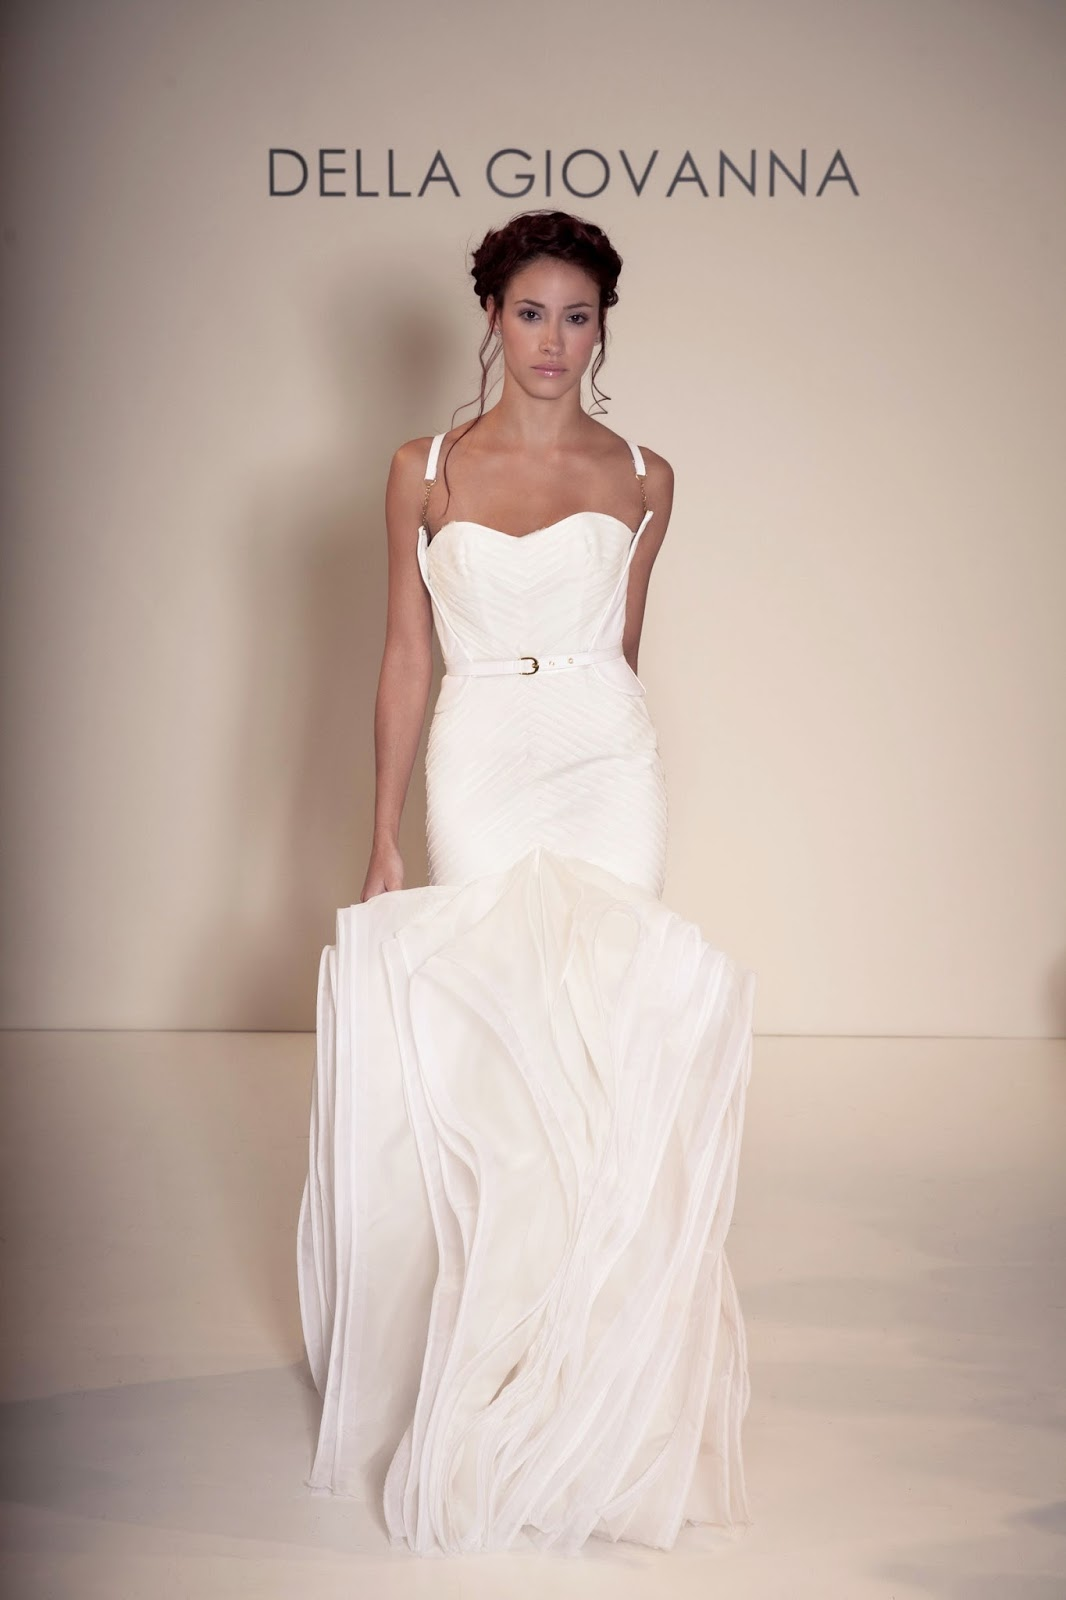 Della Giovanna Bridal Fall 2015 Wedding Dresses